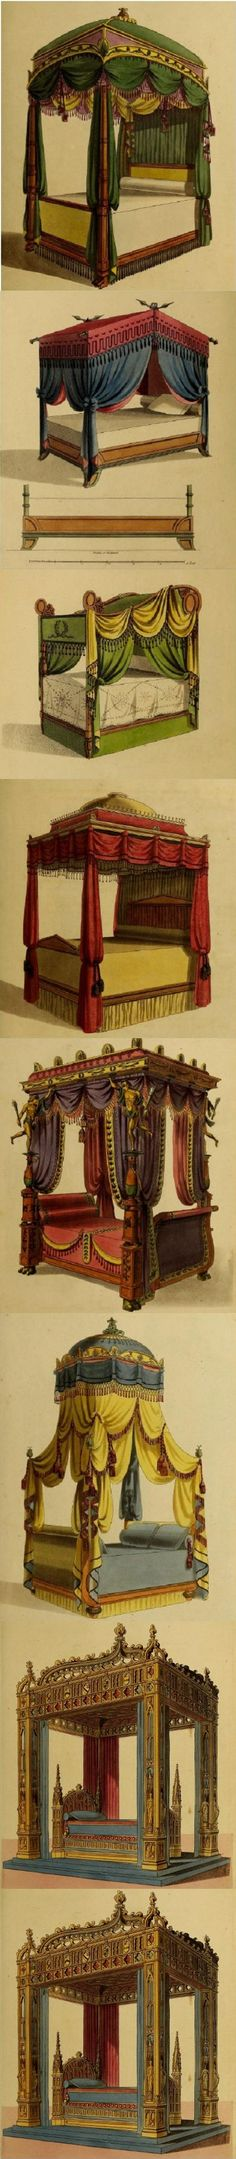 Click through to read the 1839 book these vintage bed ideas are from titled: Collection of Designs for Household Furniture and Interior Decoration.